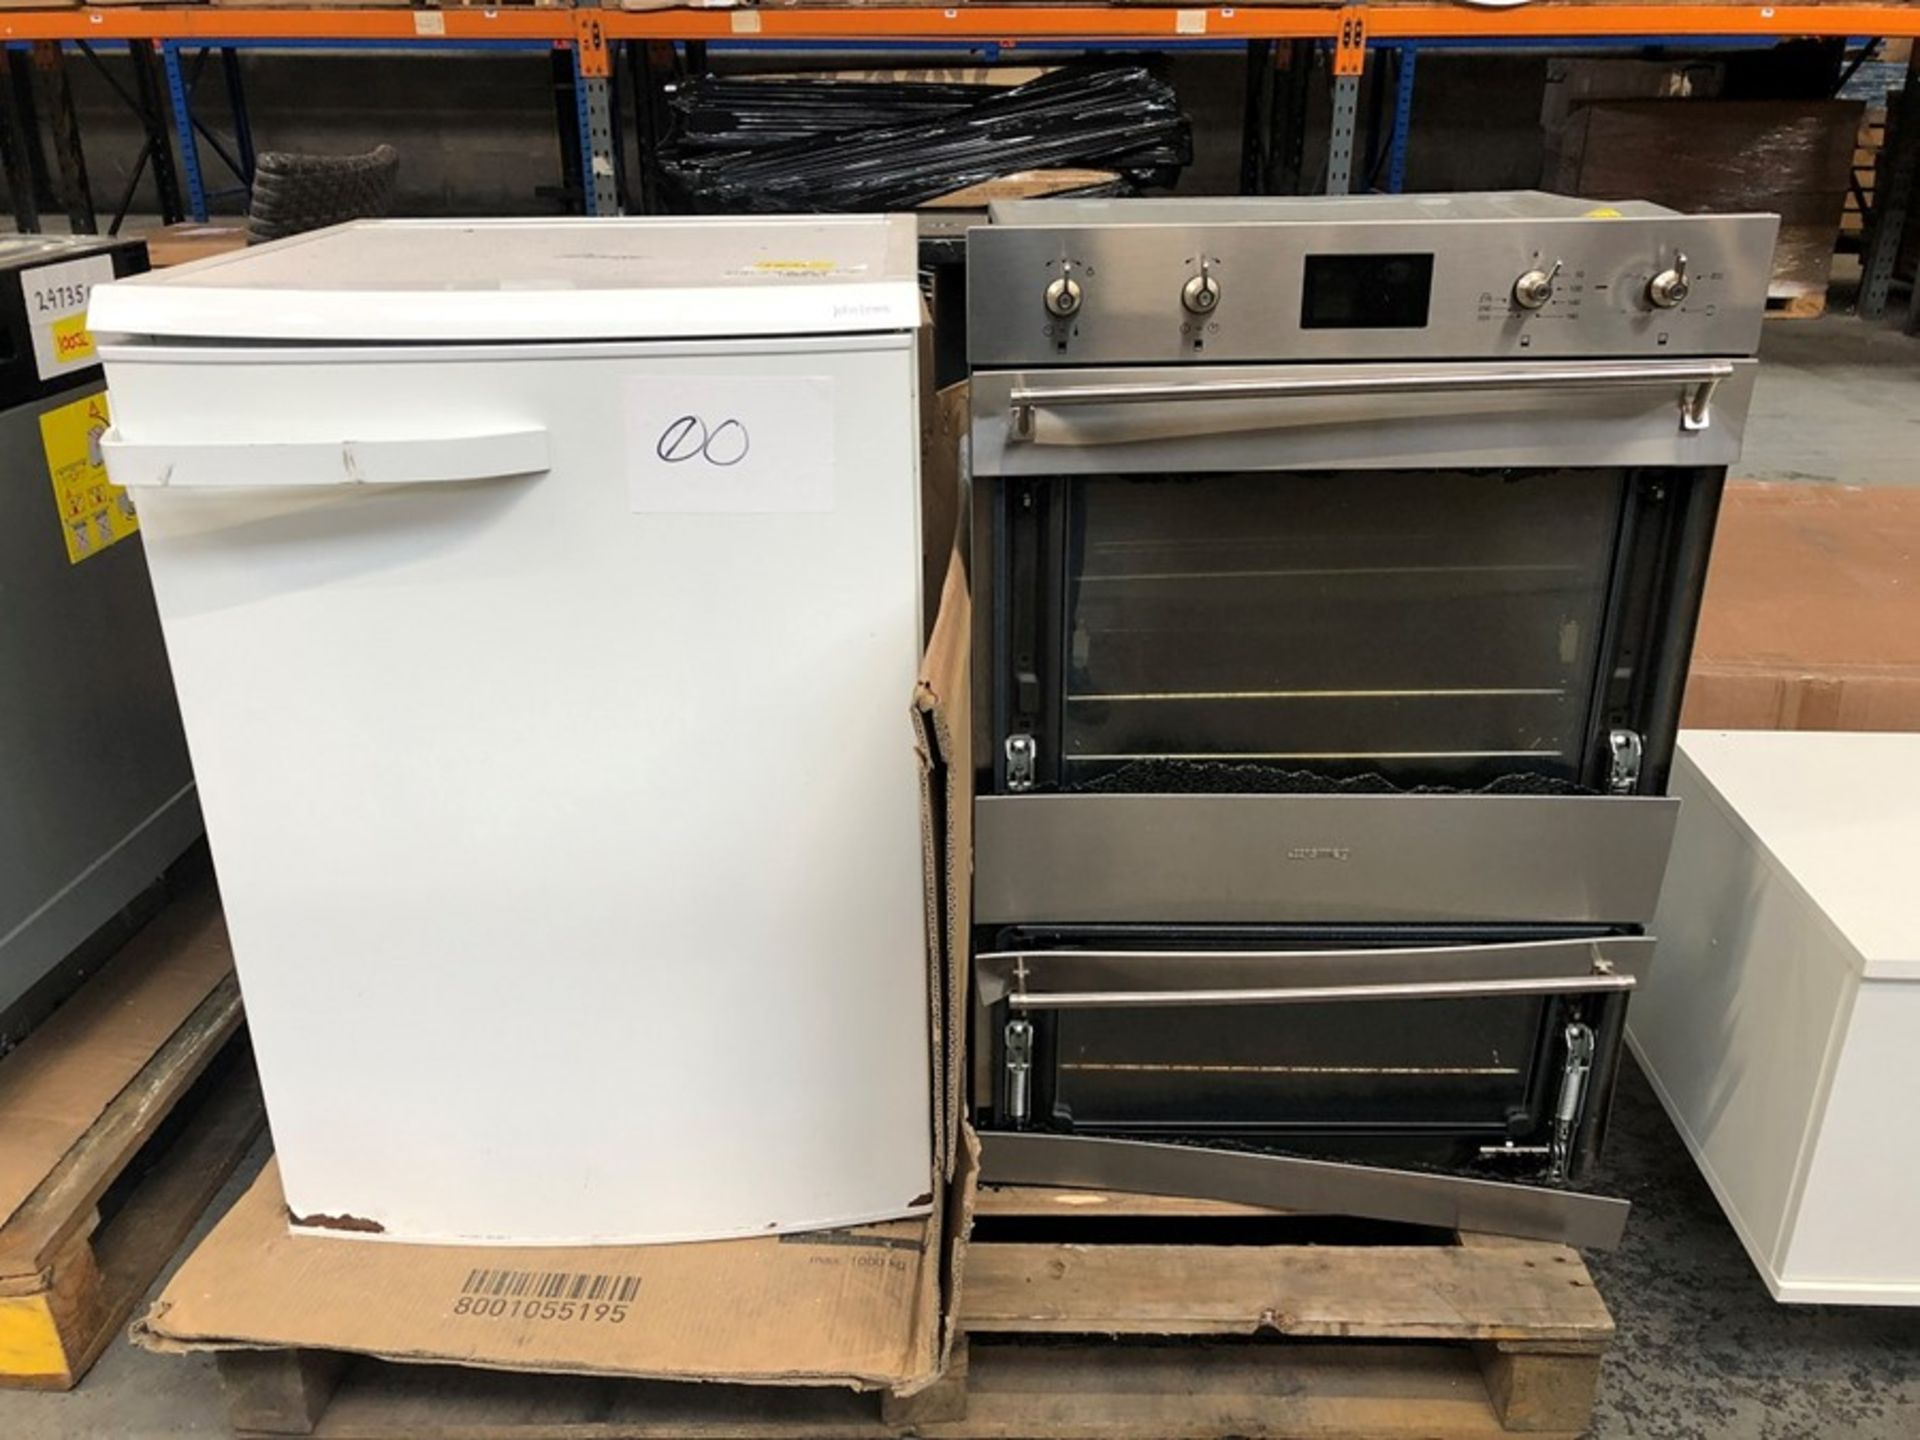 1 X BULK PALLET TO CONTAIN 2 ASSORTED APPLIANCES SOURCED FROM JOHN LEWIS / CONDITIONS VARY / ITS